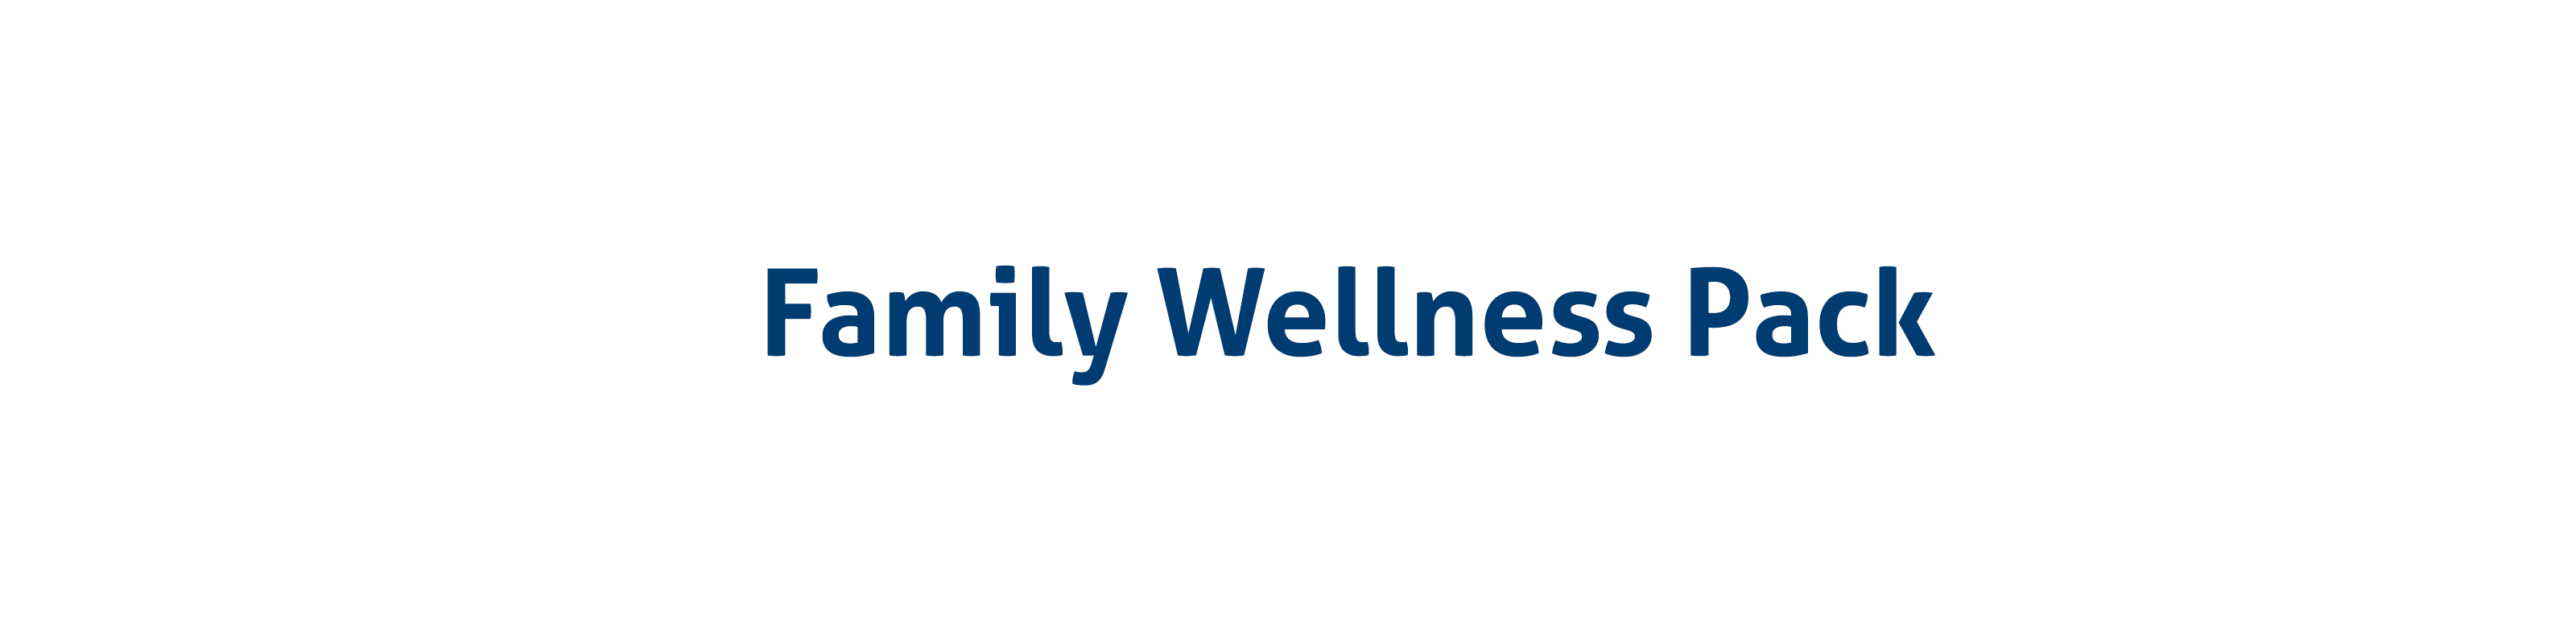 Family Wellness Pack